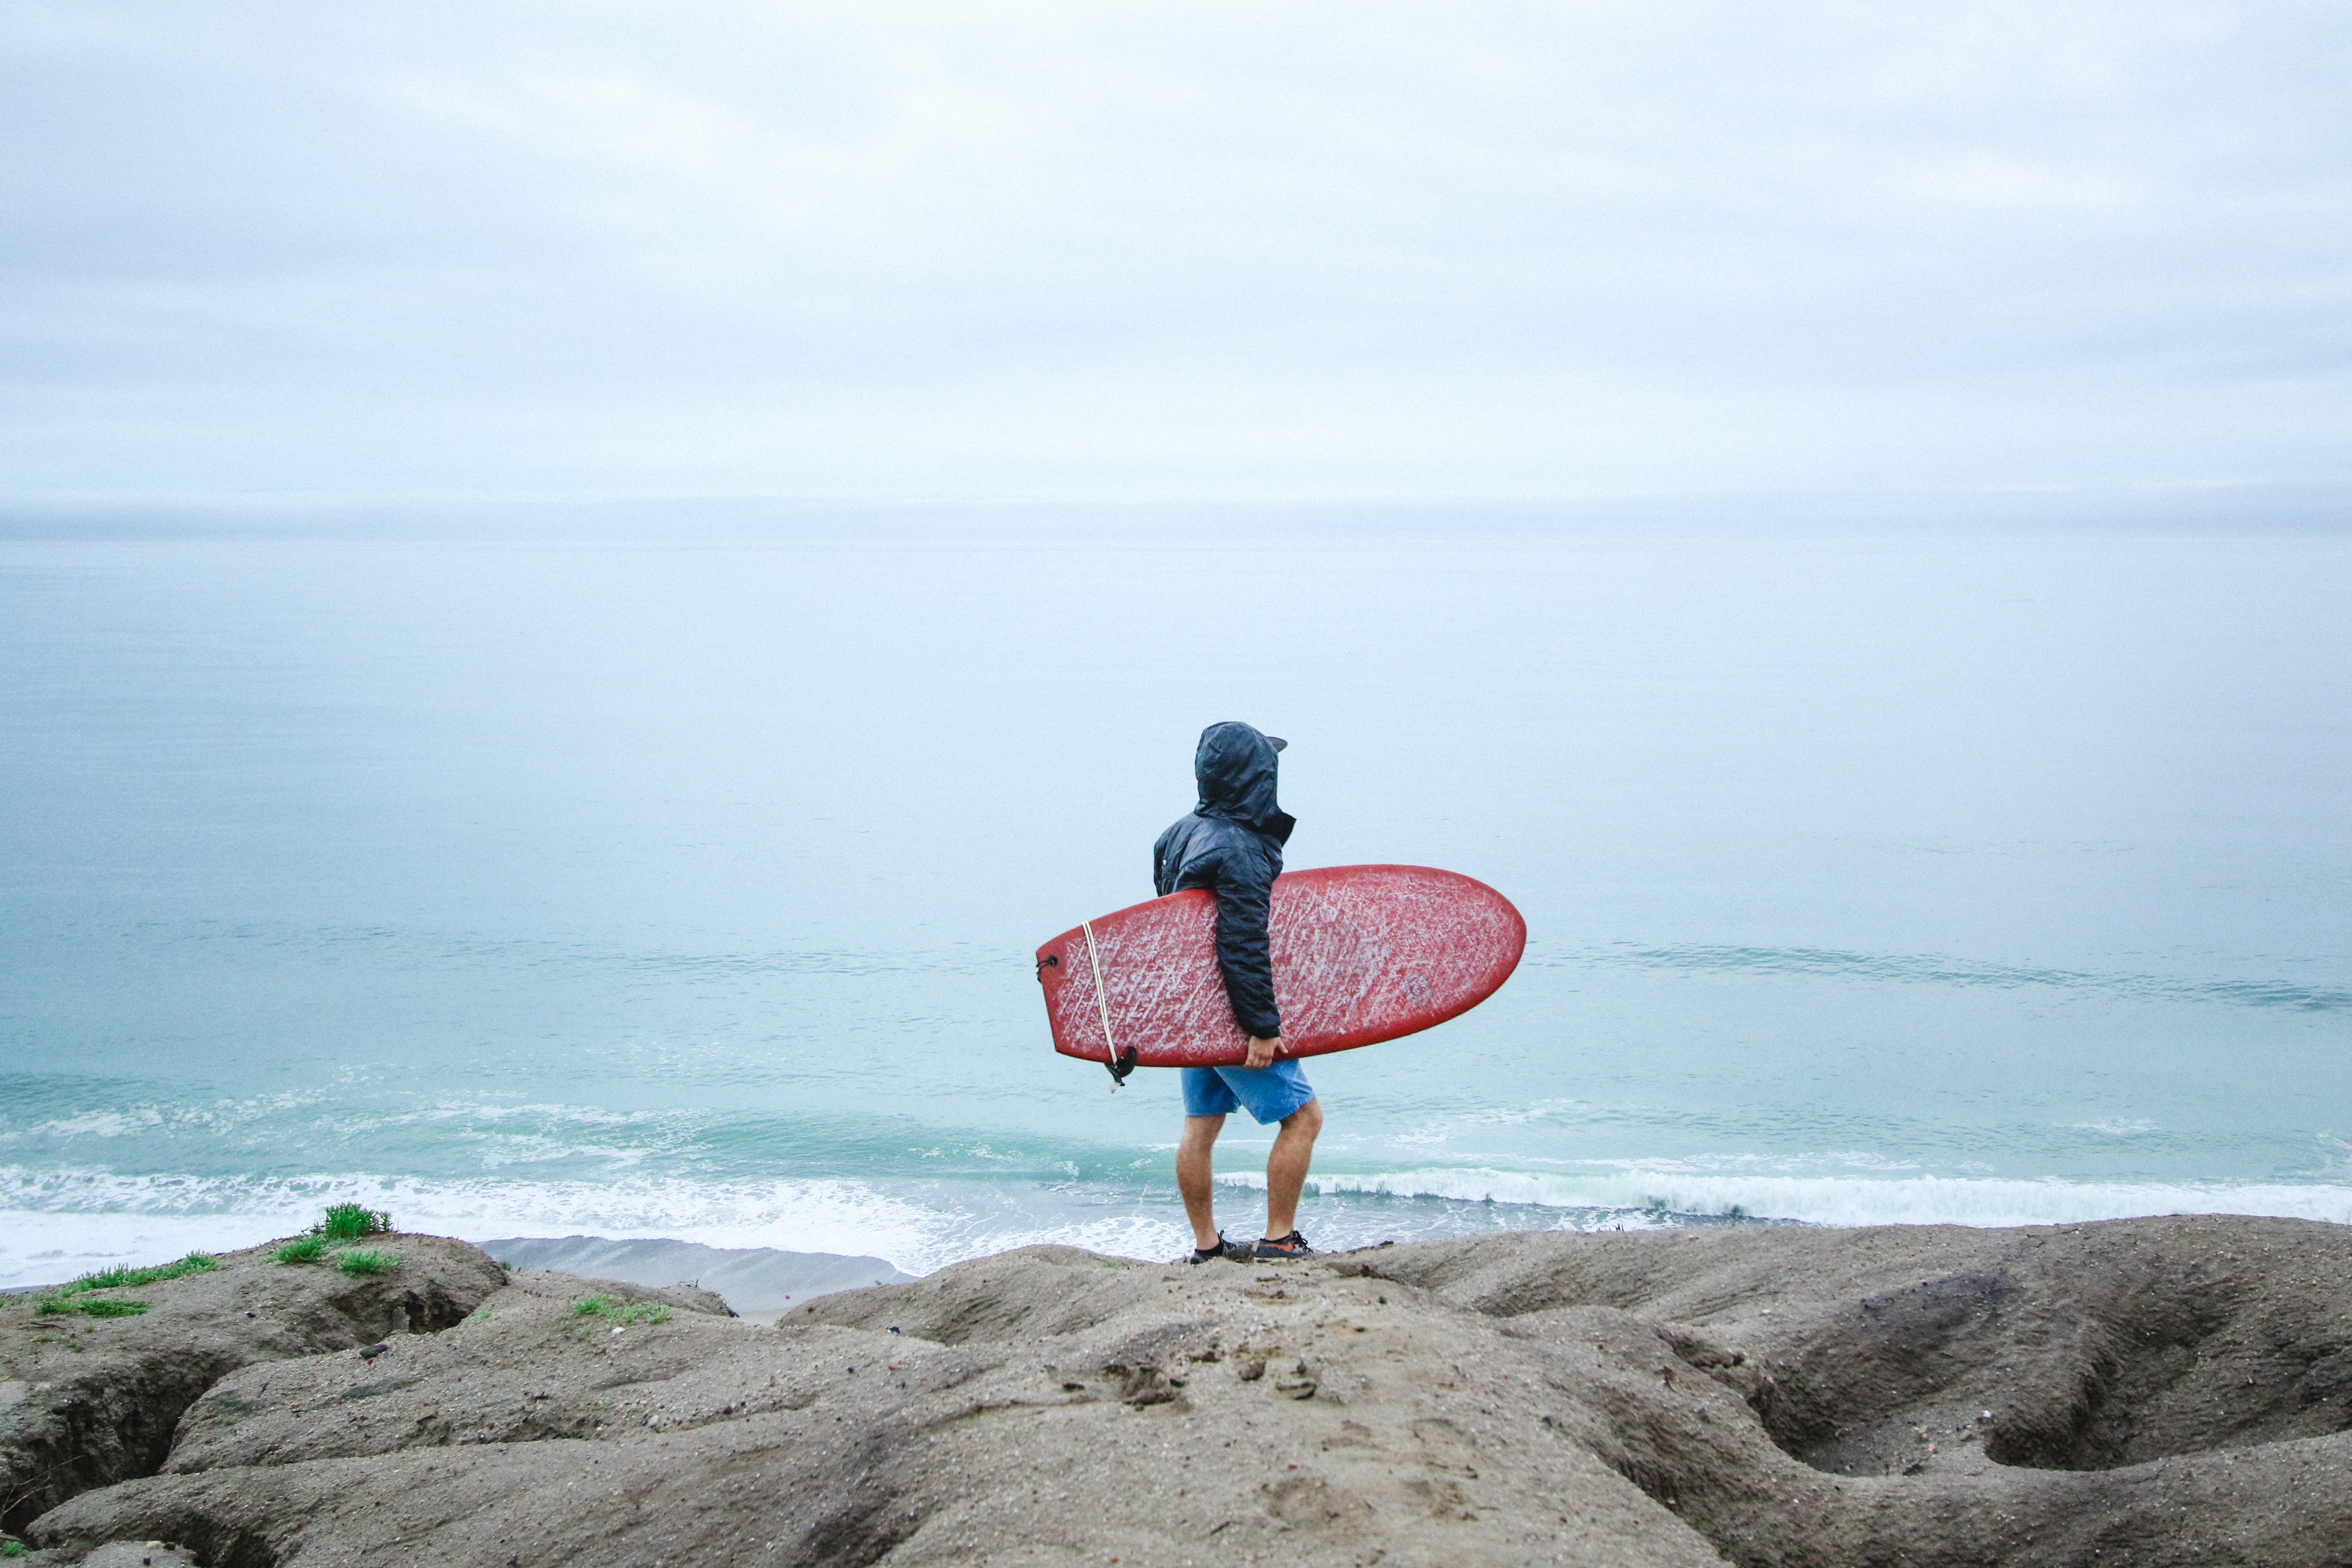 person holding surfboard